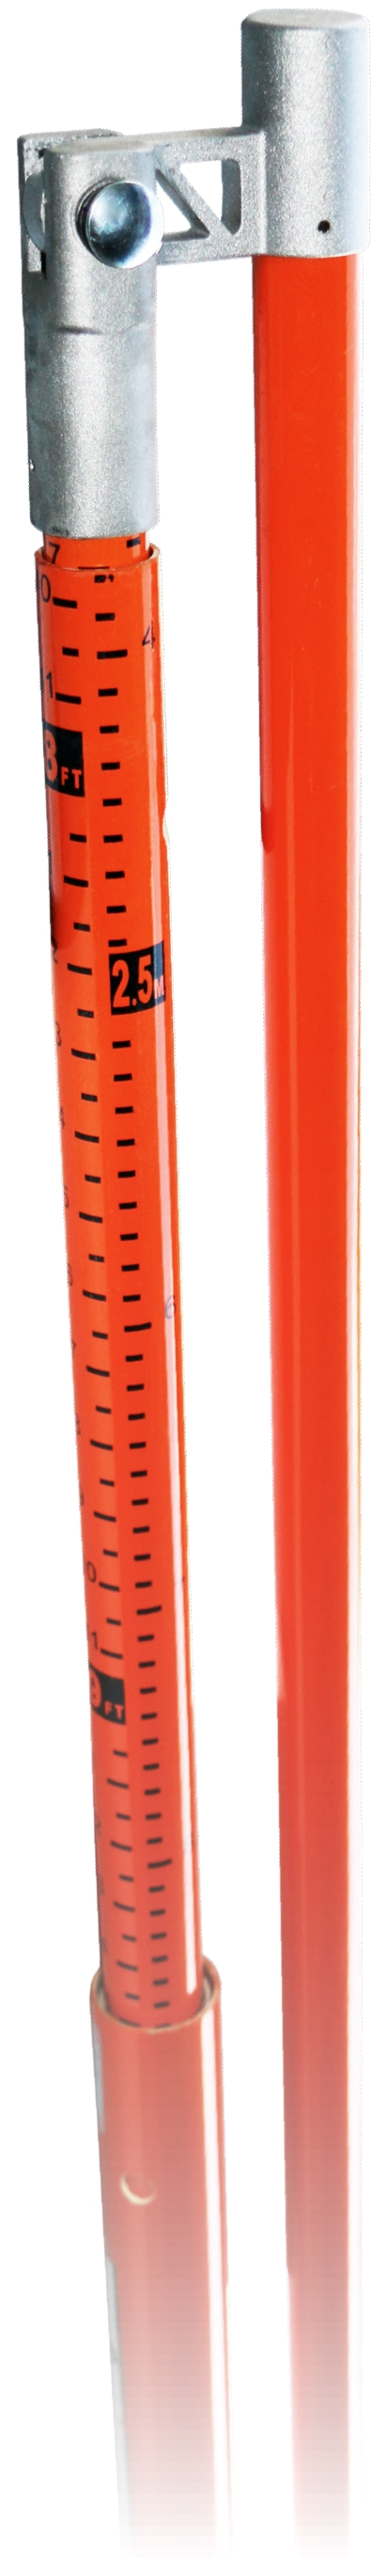 SafeTruck by Ms. Carita® EZ Flip Stick Load Measuring Stick LMS103-0